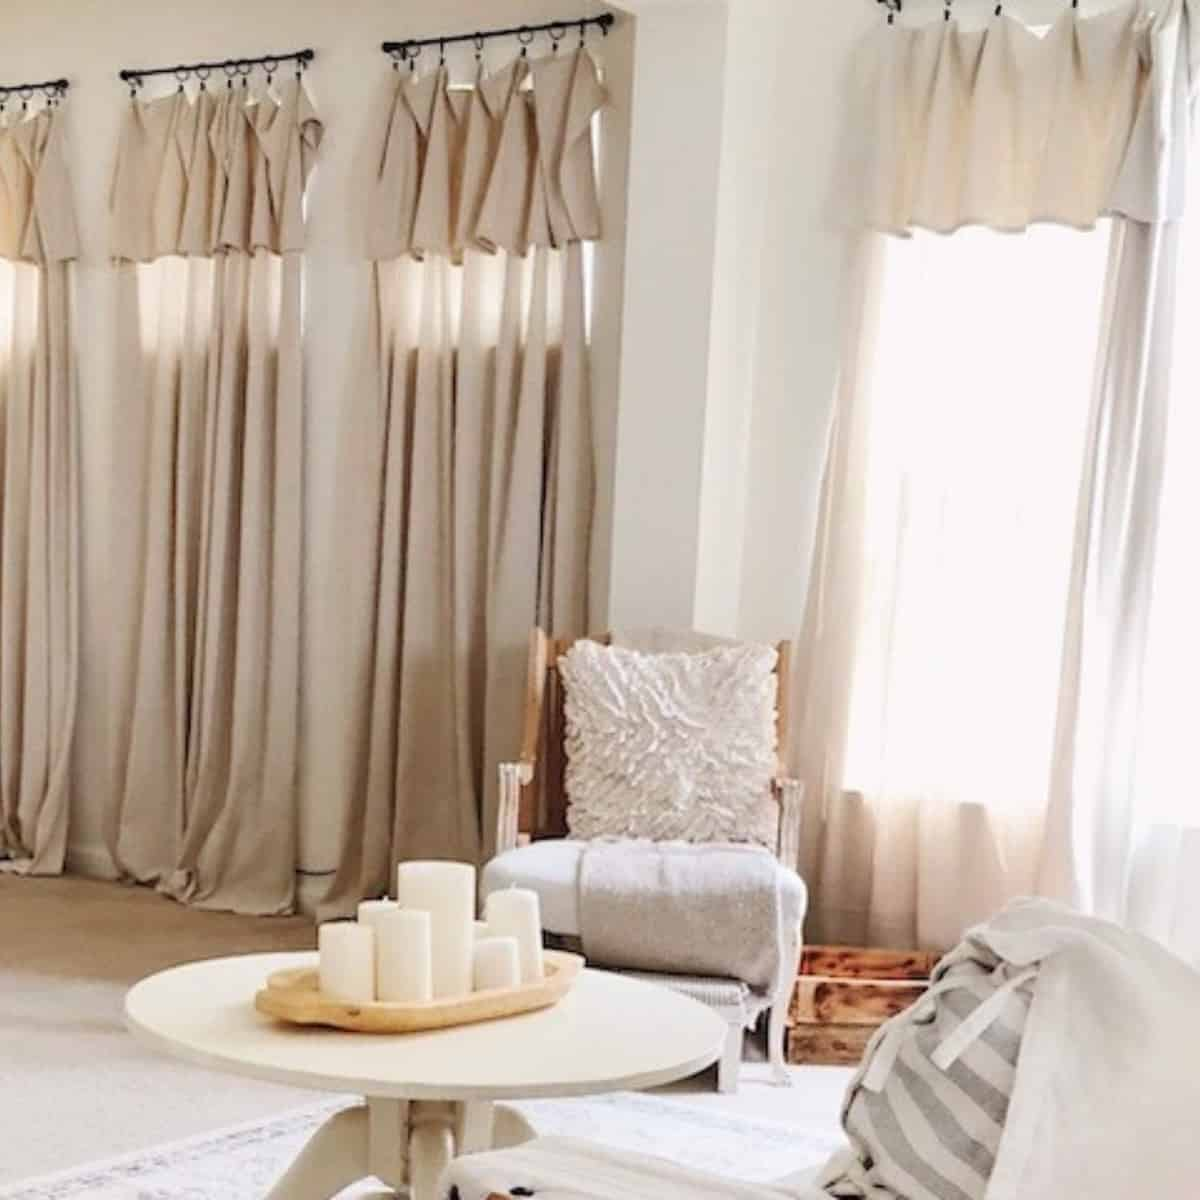 Farmhouse Inspired No Sew Drop Cloth Curtains Boots Hooves Homestead